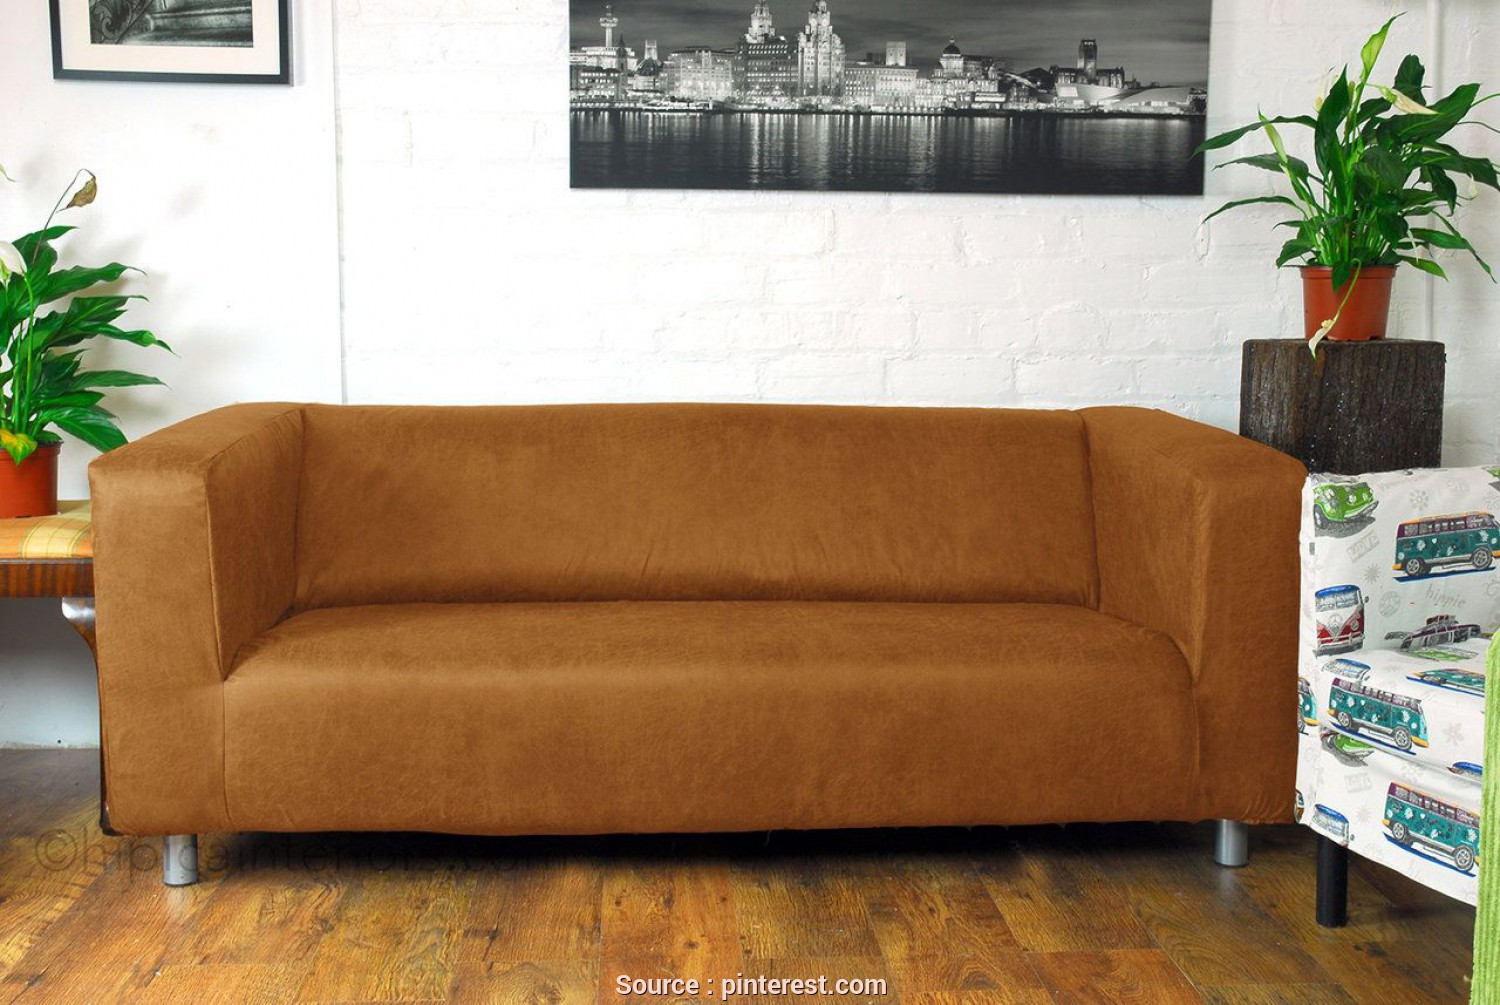 Ikea Klippan Leather Cover, A Buon Mercato Distressed Faux Leather Look Klippan Sofa Cover Honey, House